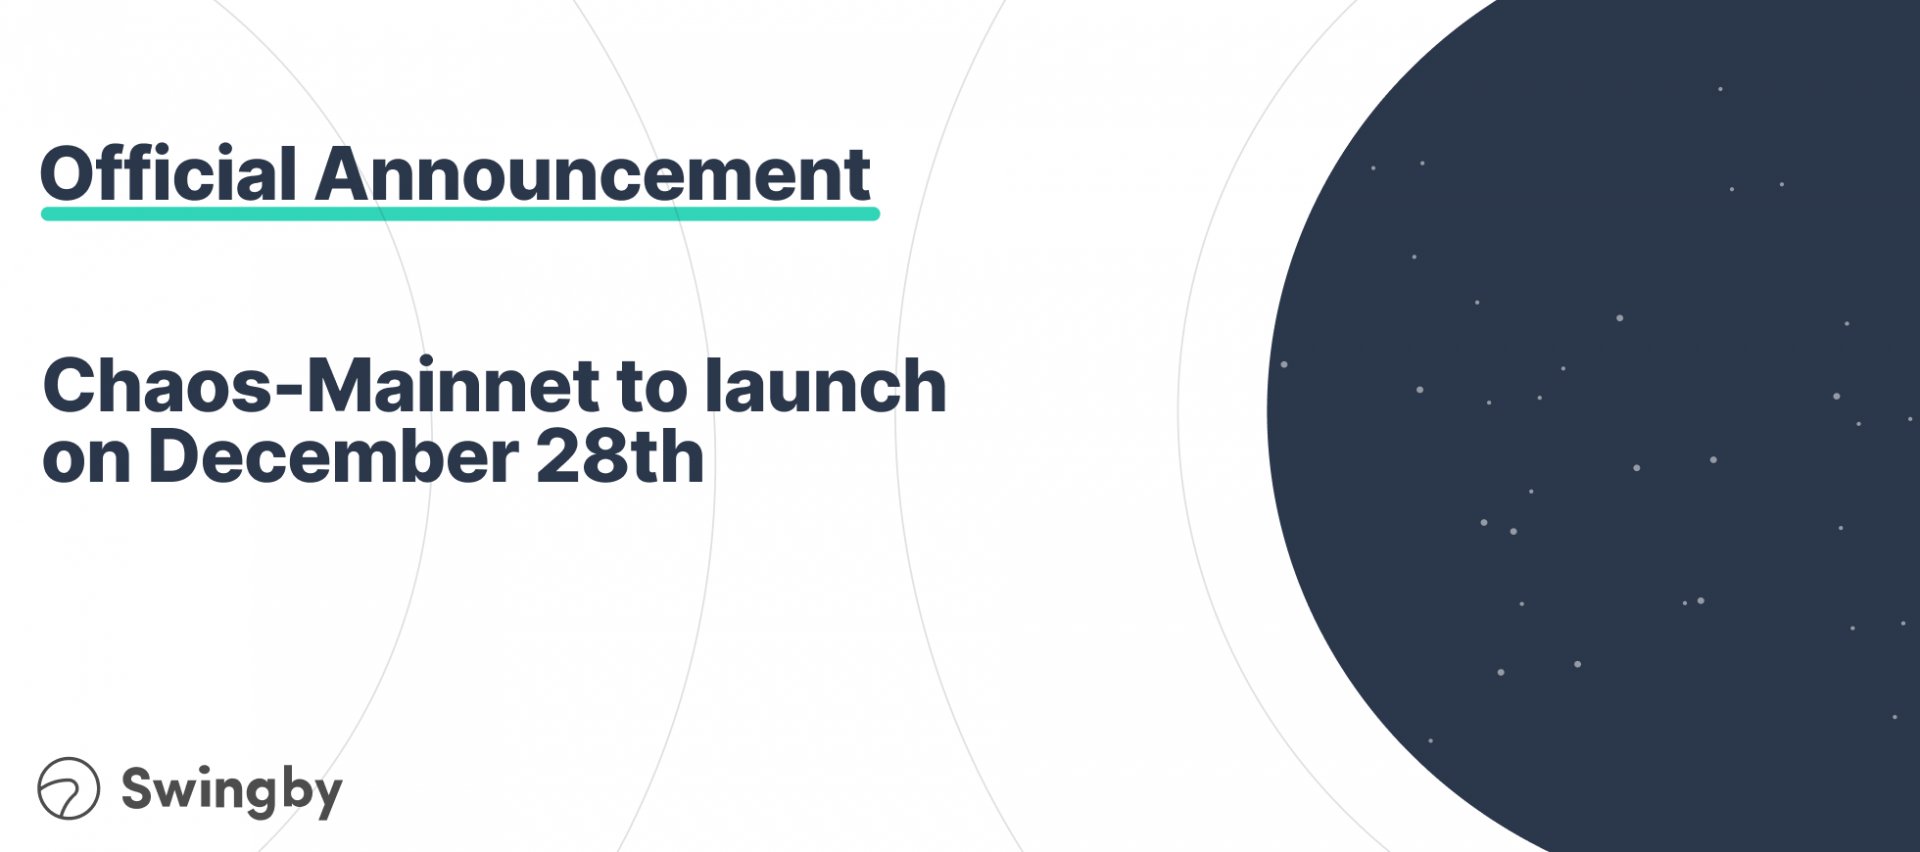 Ready for Chaos? Swingby's Chaos-Mainnet Launches on December 28th